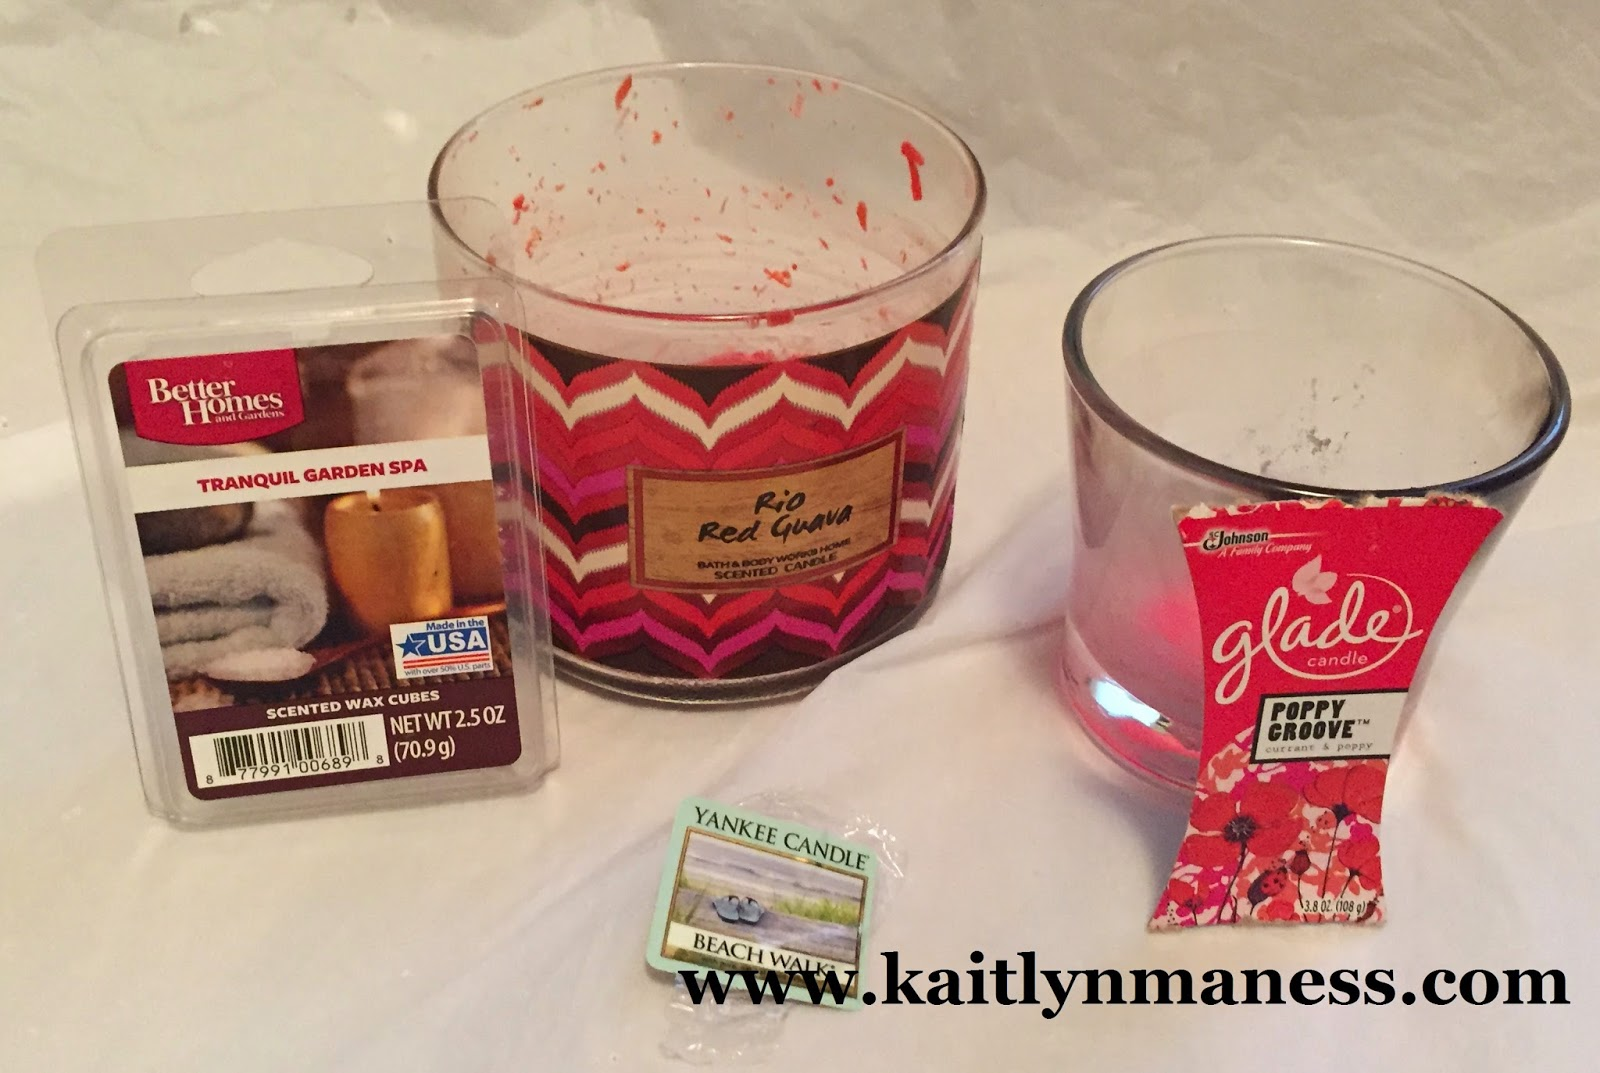 Wax Or Candles To Make The Whole Room Smell Better